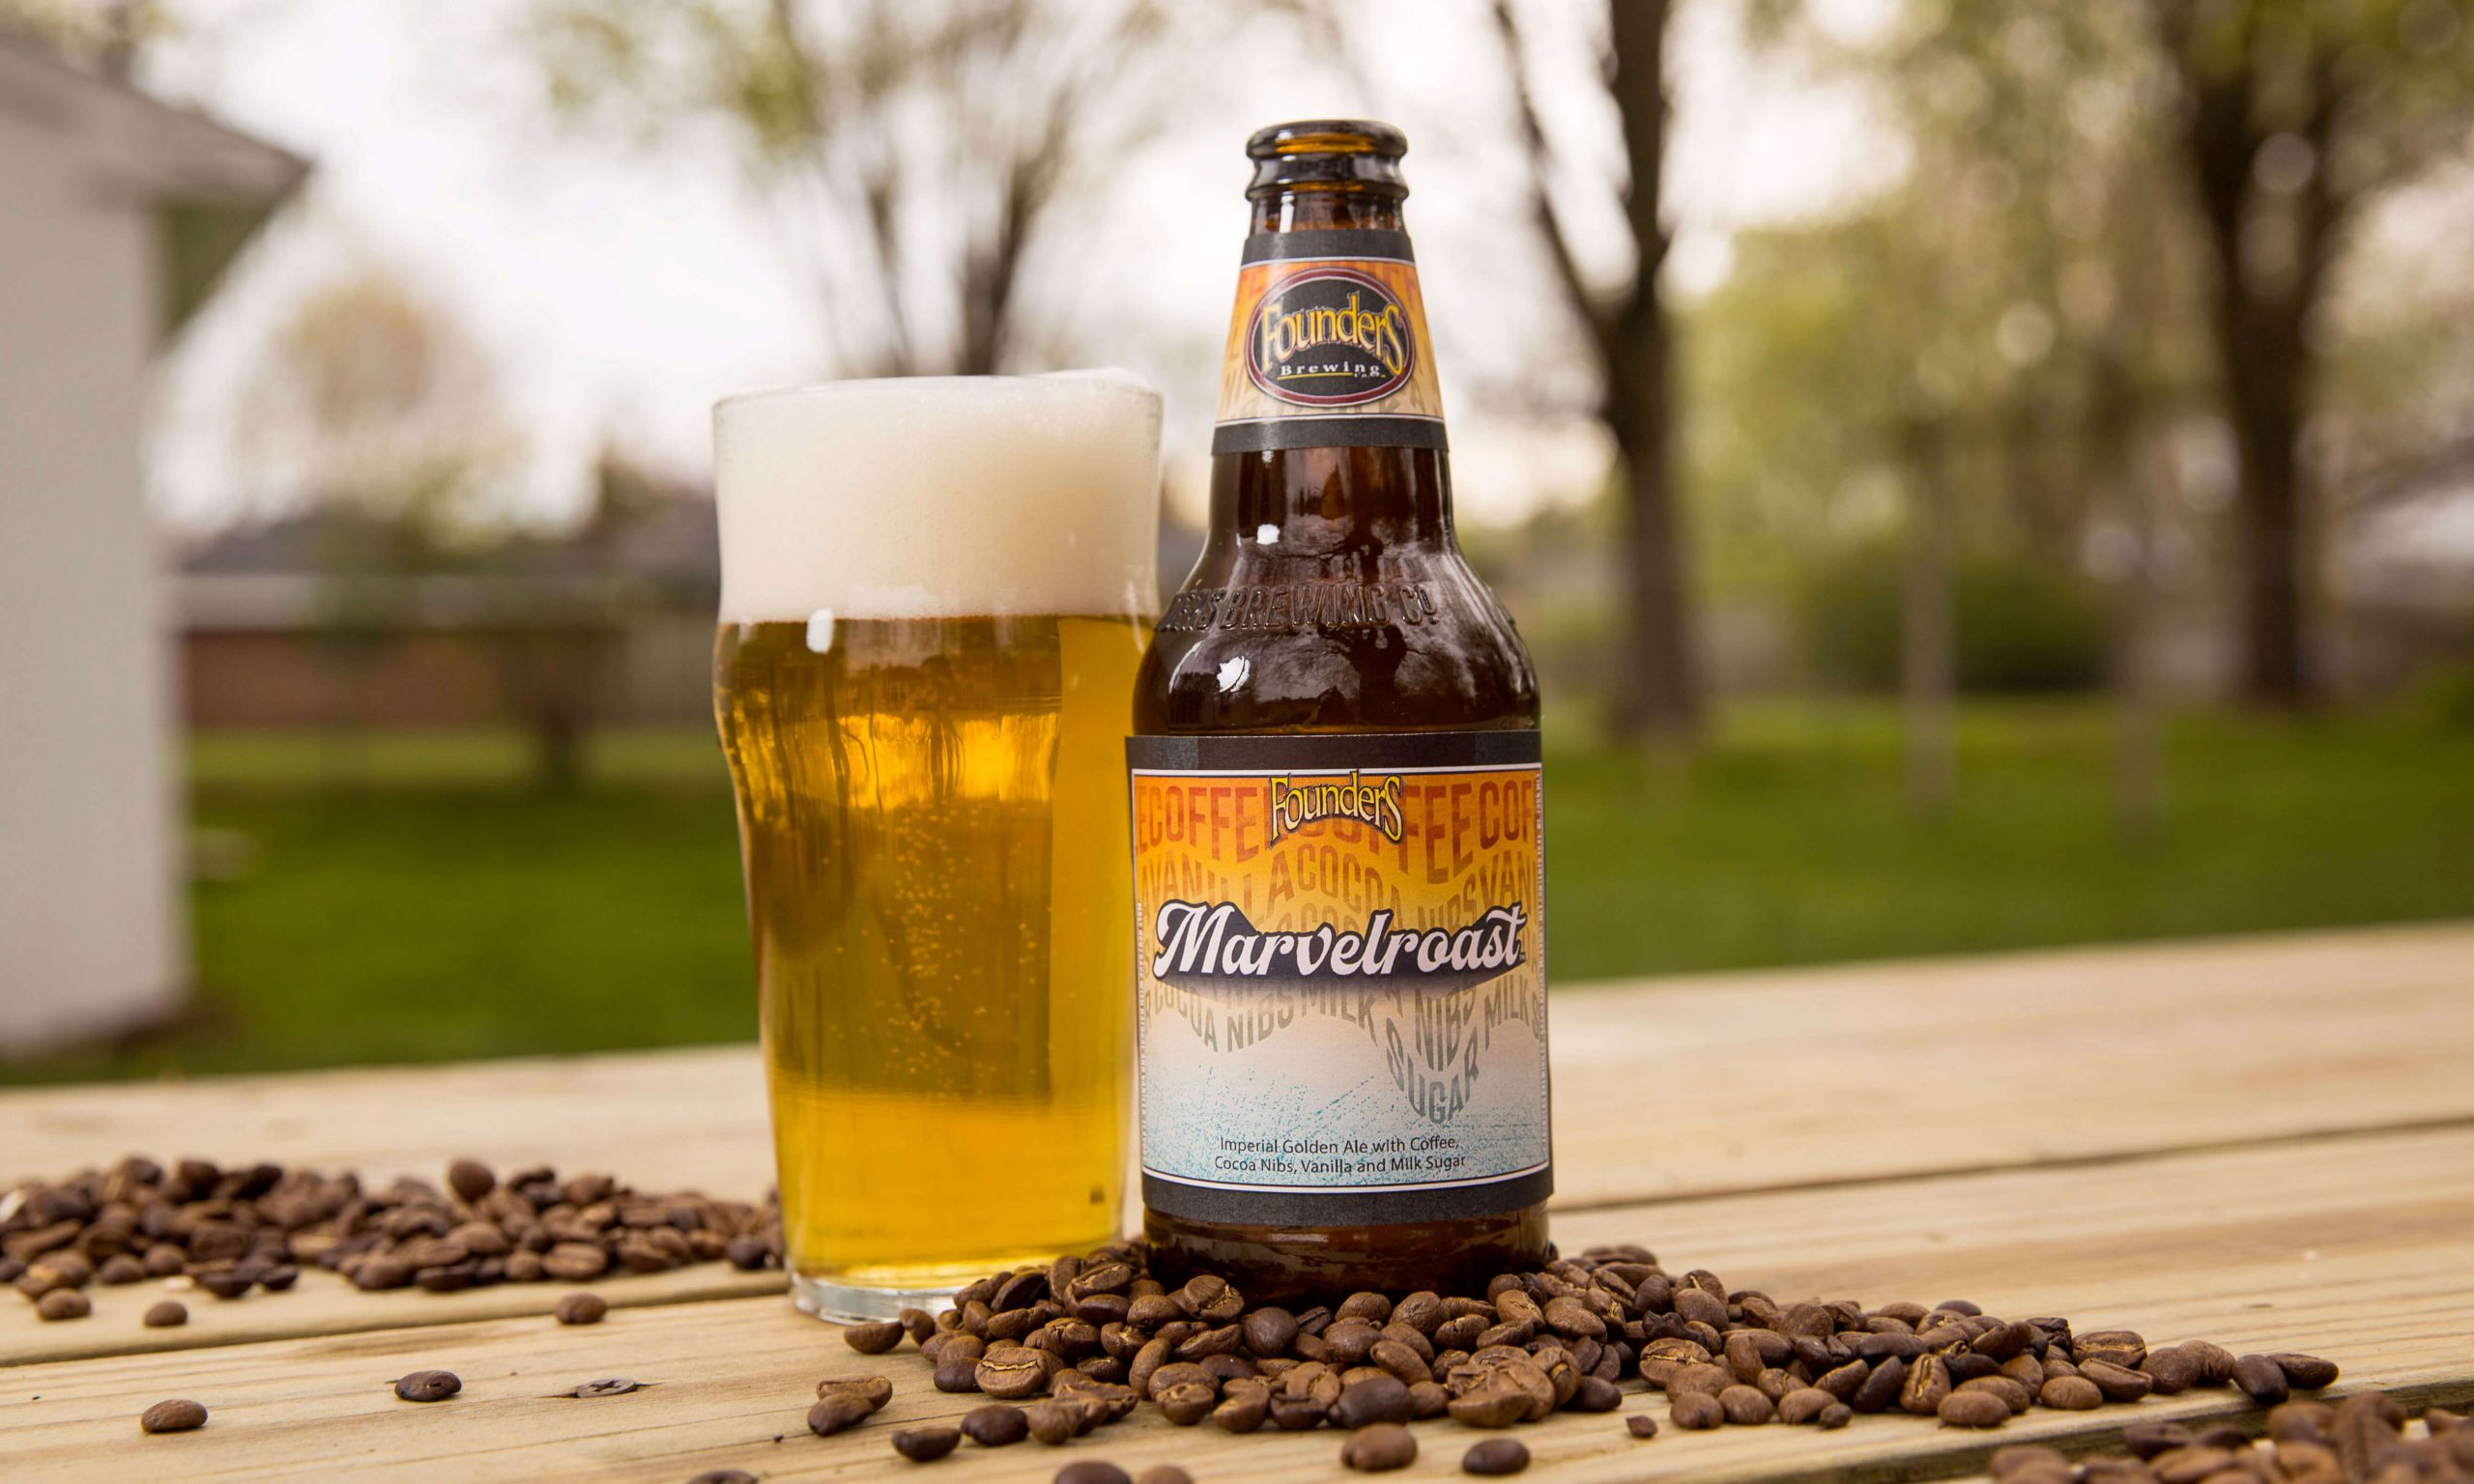 The Marvelroast Imperial Golden Ale by Founders Brewing Co. features an addition of coffee, vanilla, cocoa nibs, and milk sugar.